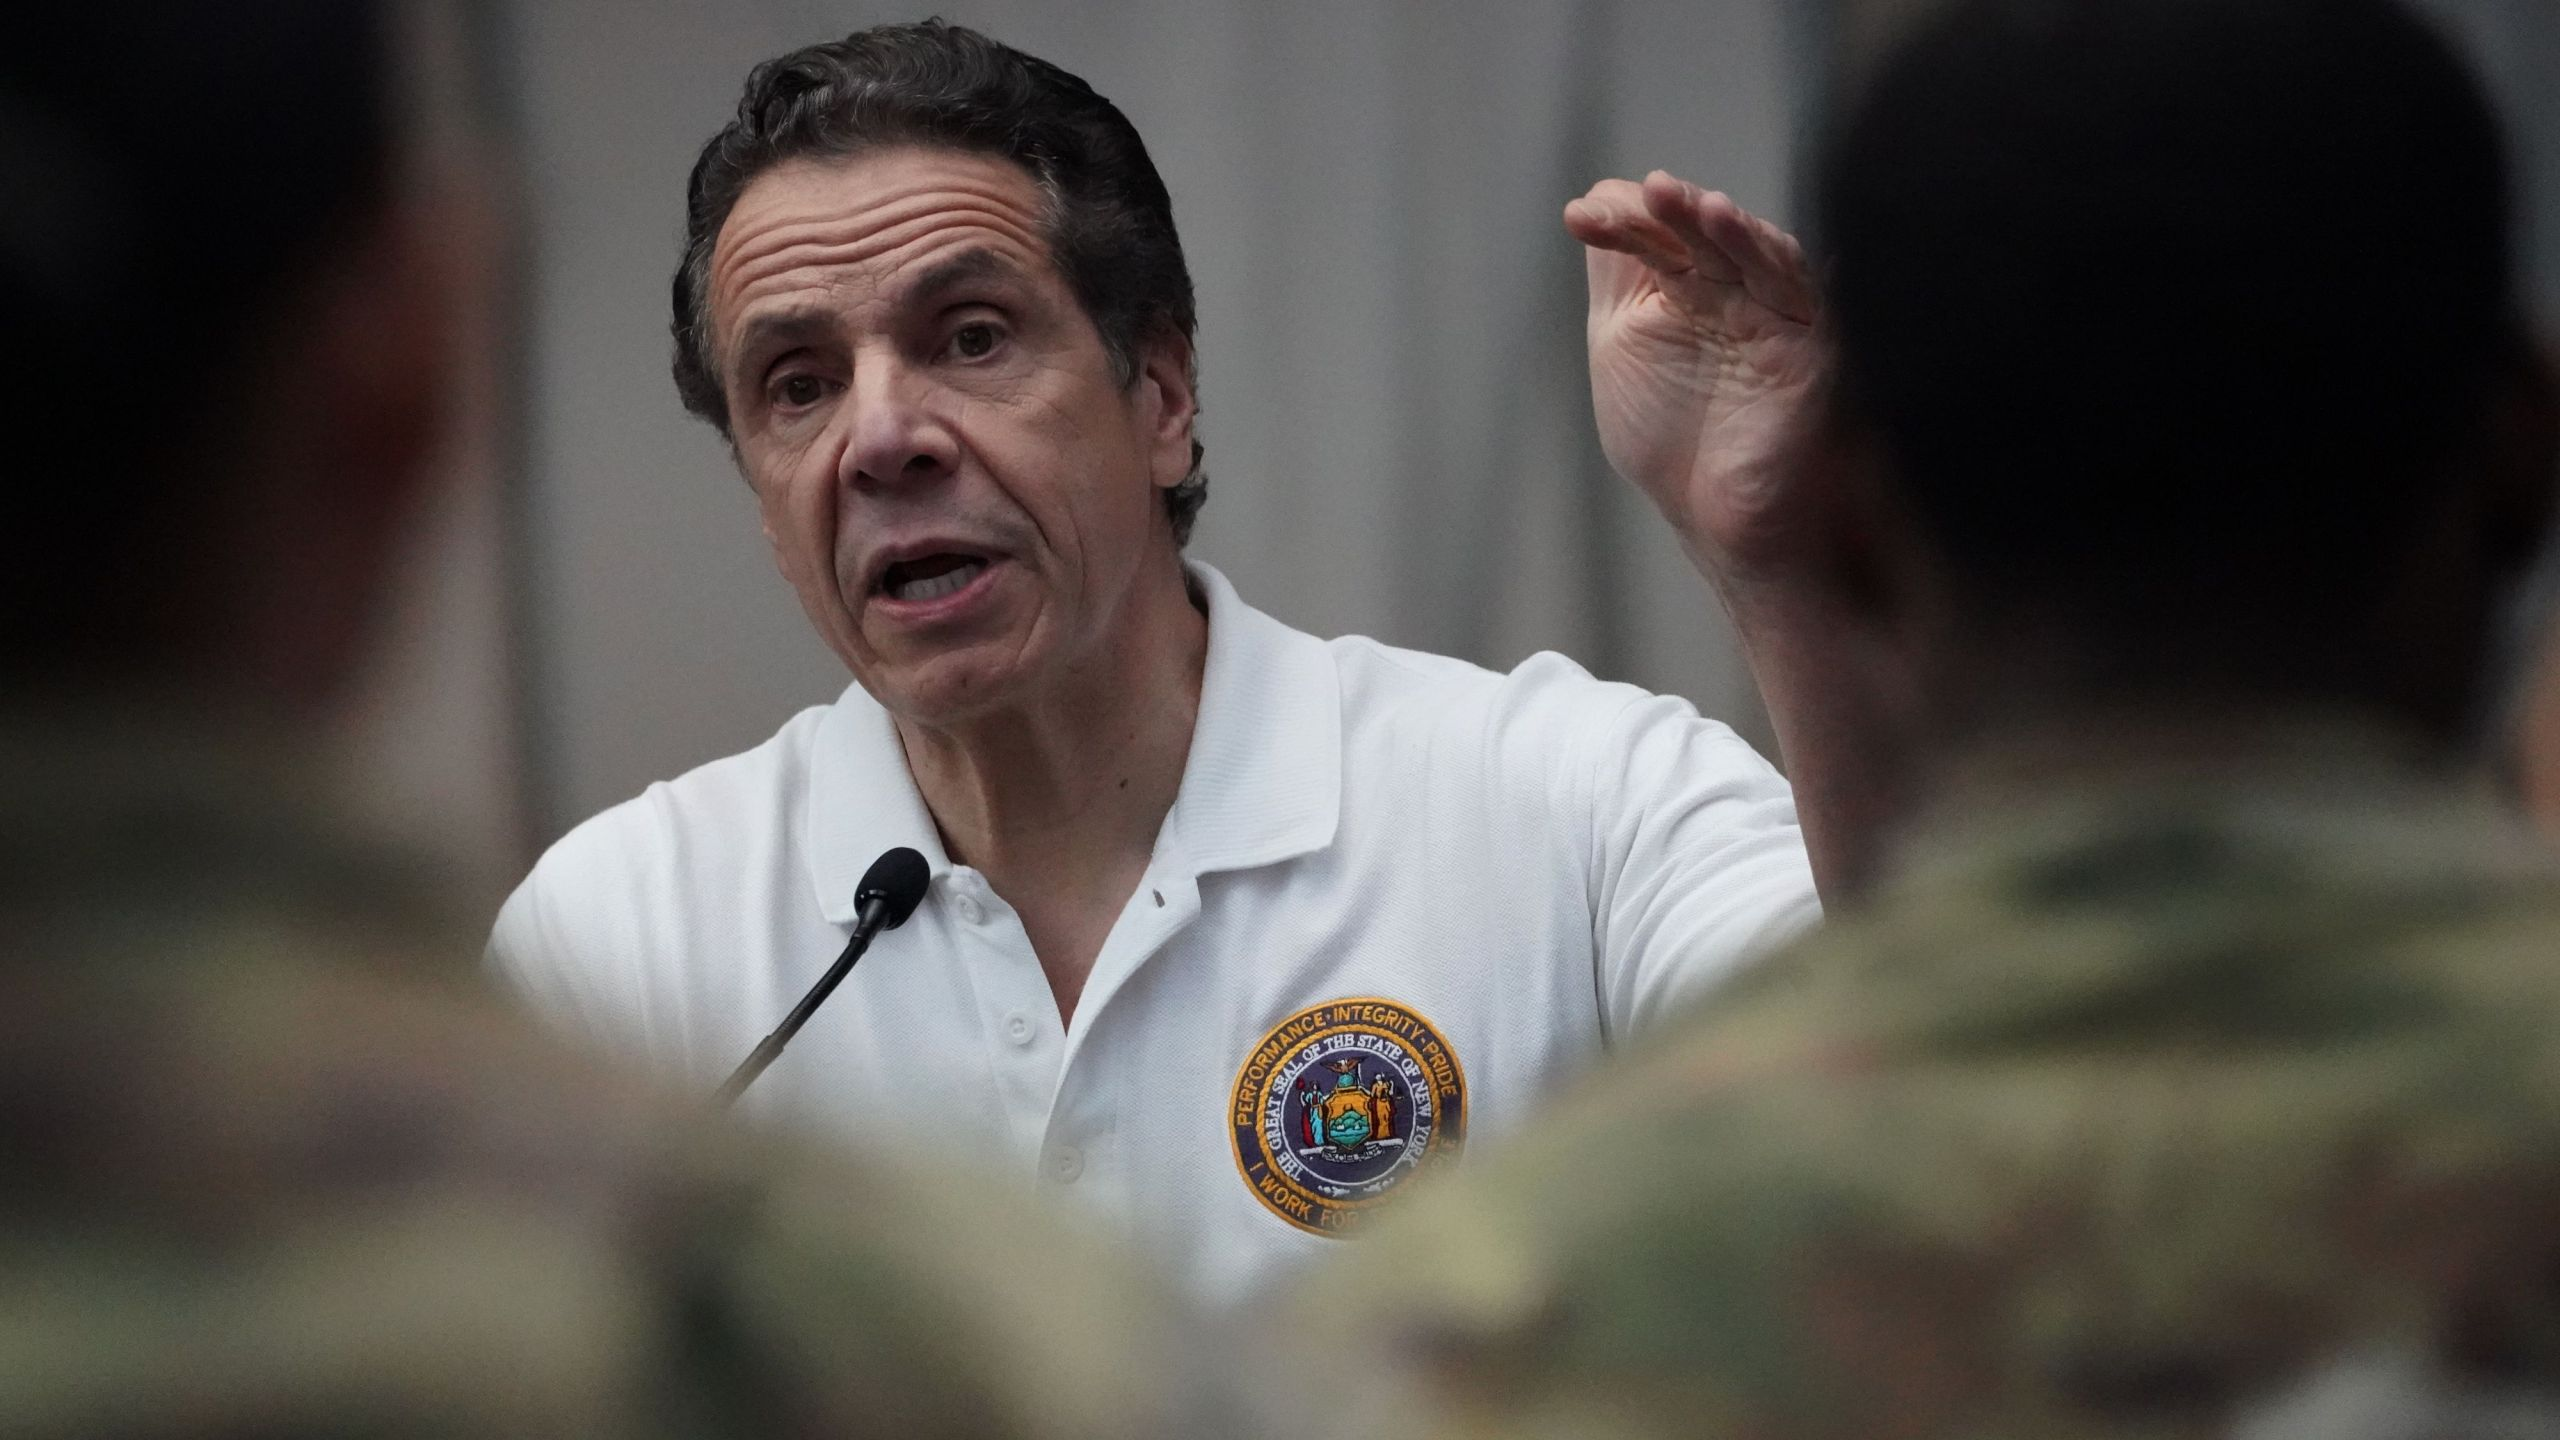 National Guard troops listen as New York Gov. Andrew Cuomo speaks to the press at the Jacob K. Javits Convention Center in New York City, on March 27, 2020. (BRYAN R. SMITH/AFP via Getty Images)